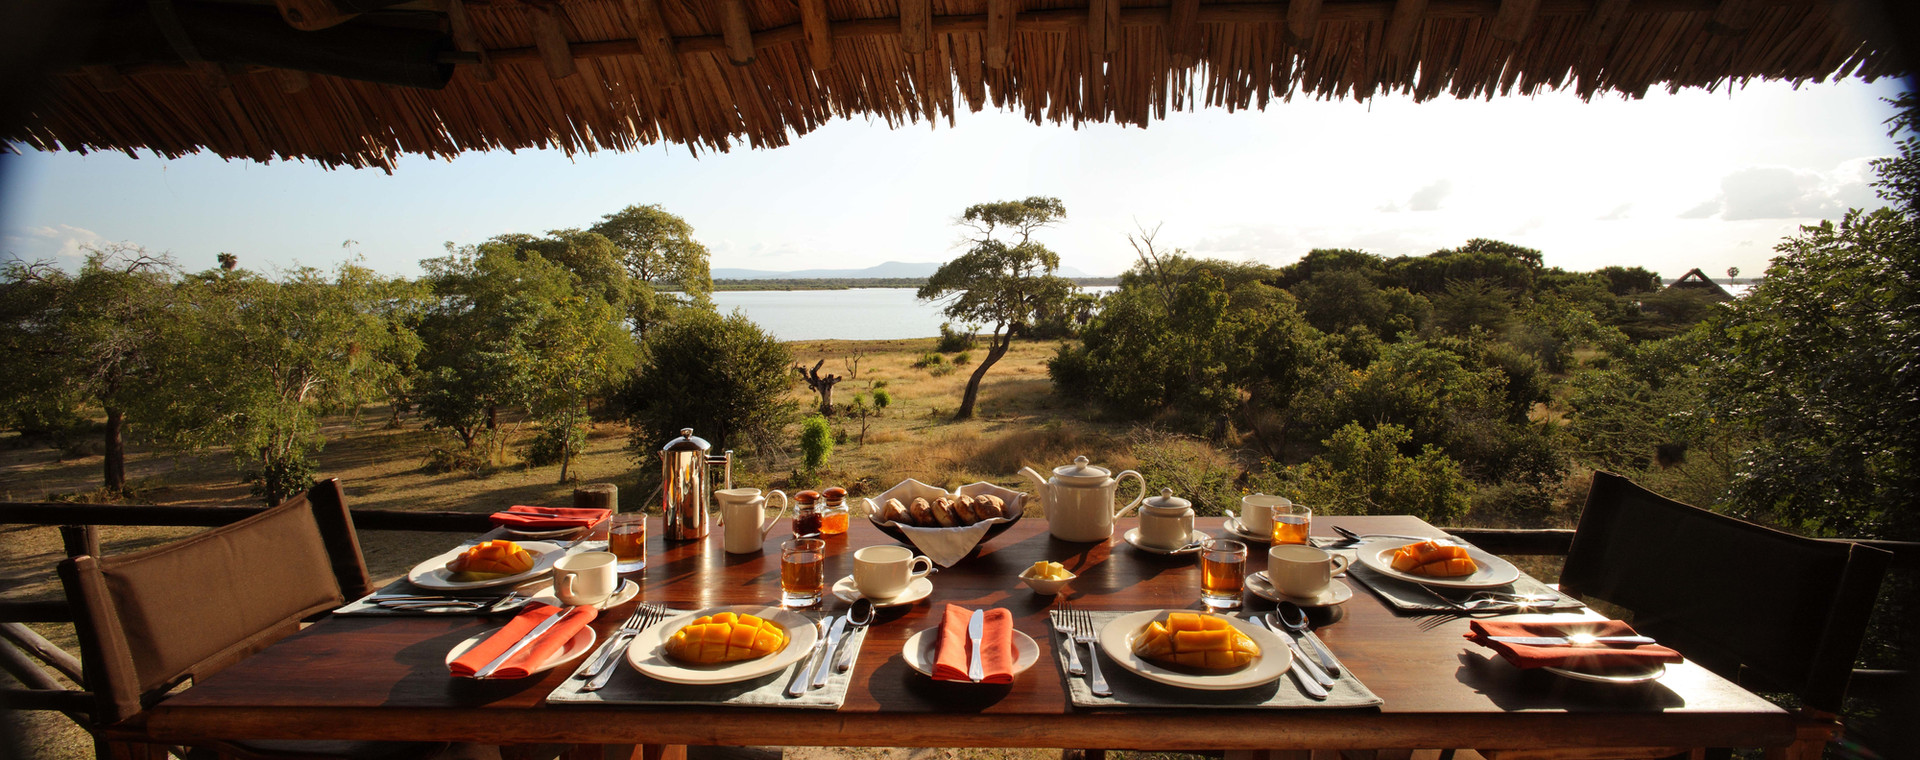 Breakfast with a view at Siwandu's elevated Restaurant, Nyerere, Selous